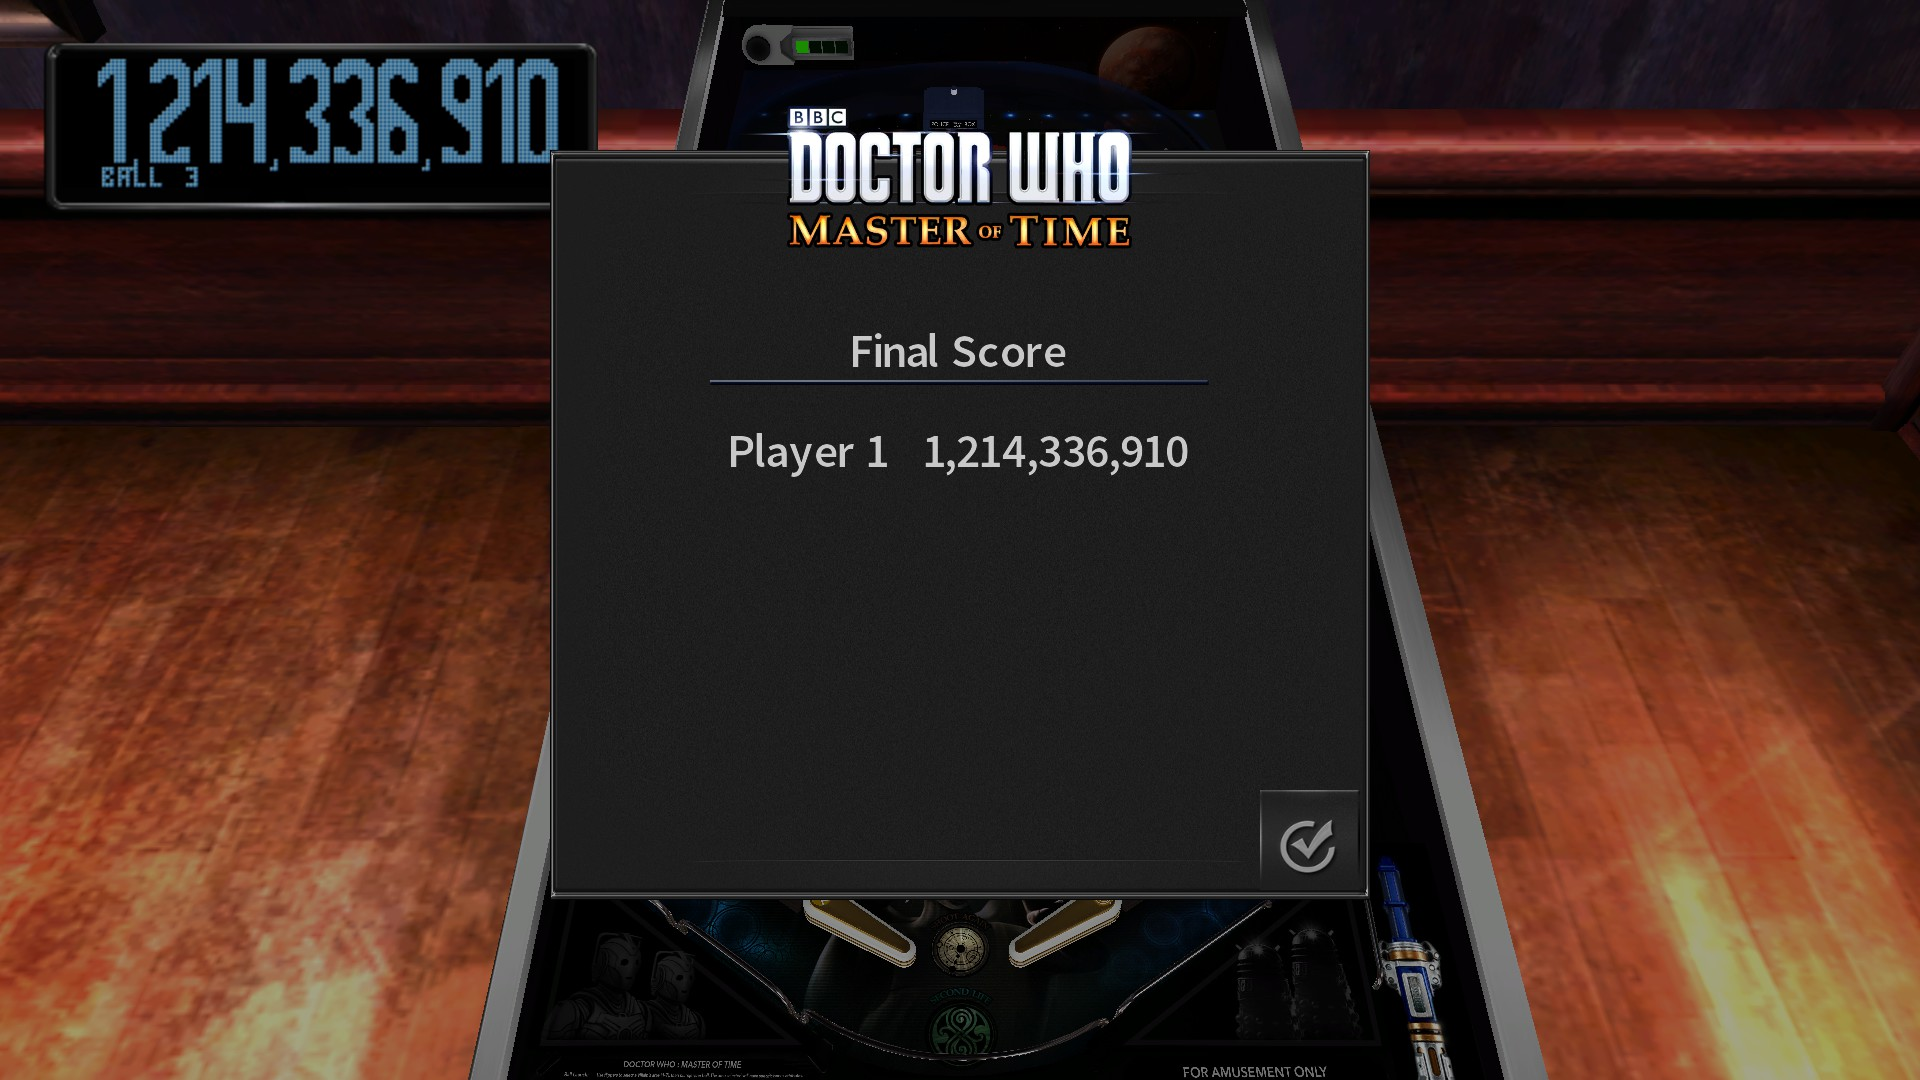 TheTrickster: Pinball Arcade: Doctor Who: Master of Time (PC) 1,214,336,910 points on 2017-03-28 14:44:57